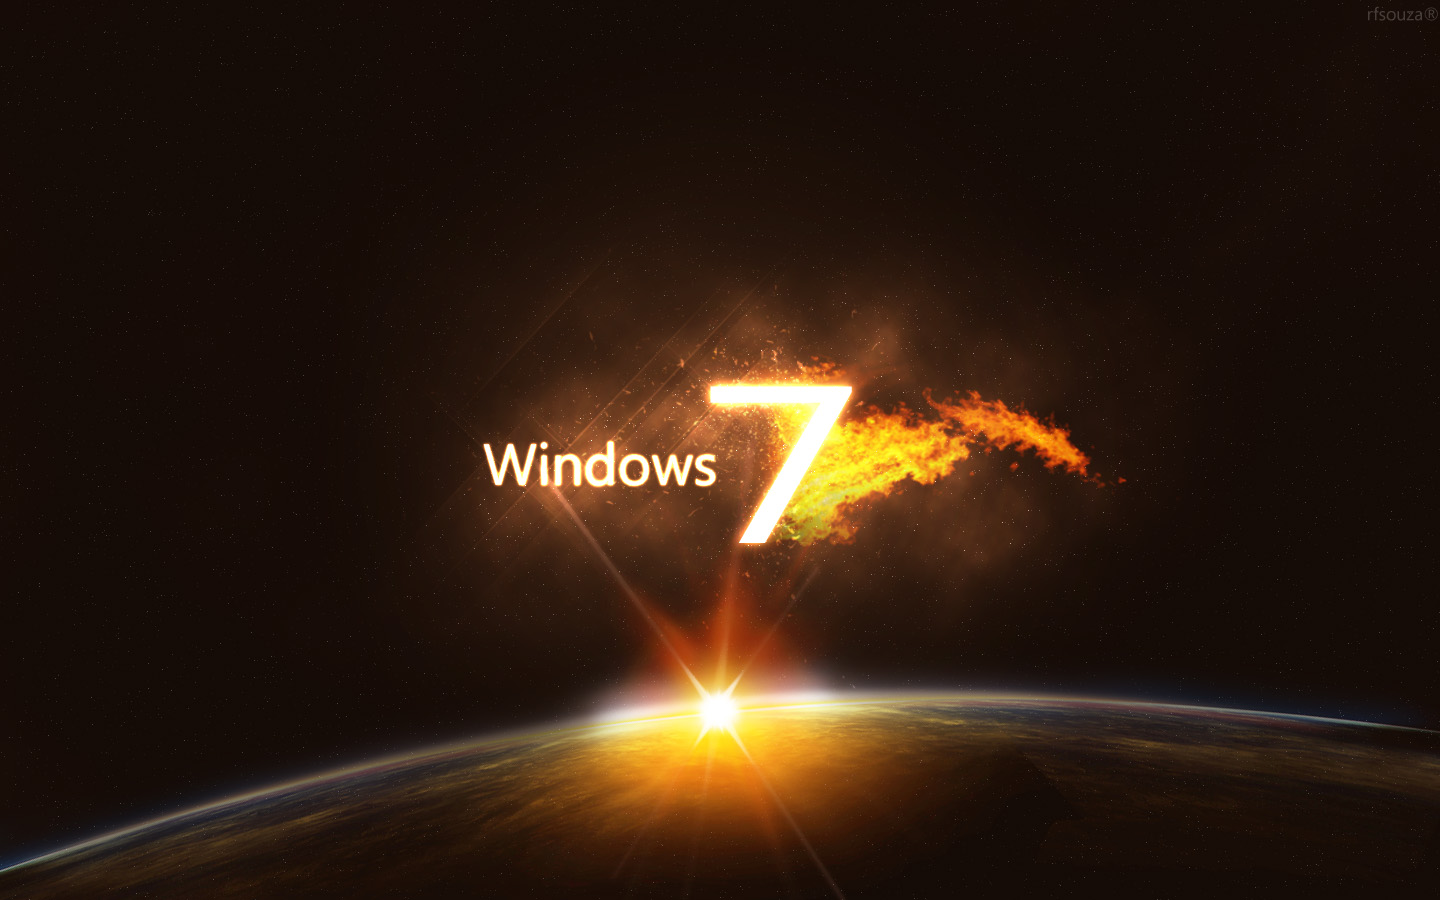 Windows 7 Original Wallpapers HD Wallpapers - windows seven 7 original wide hd wallpapers